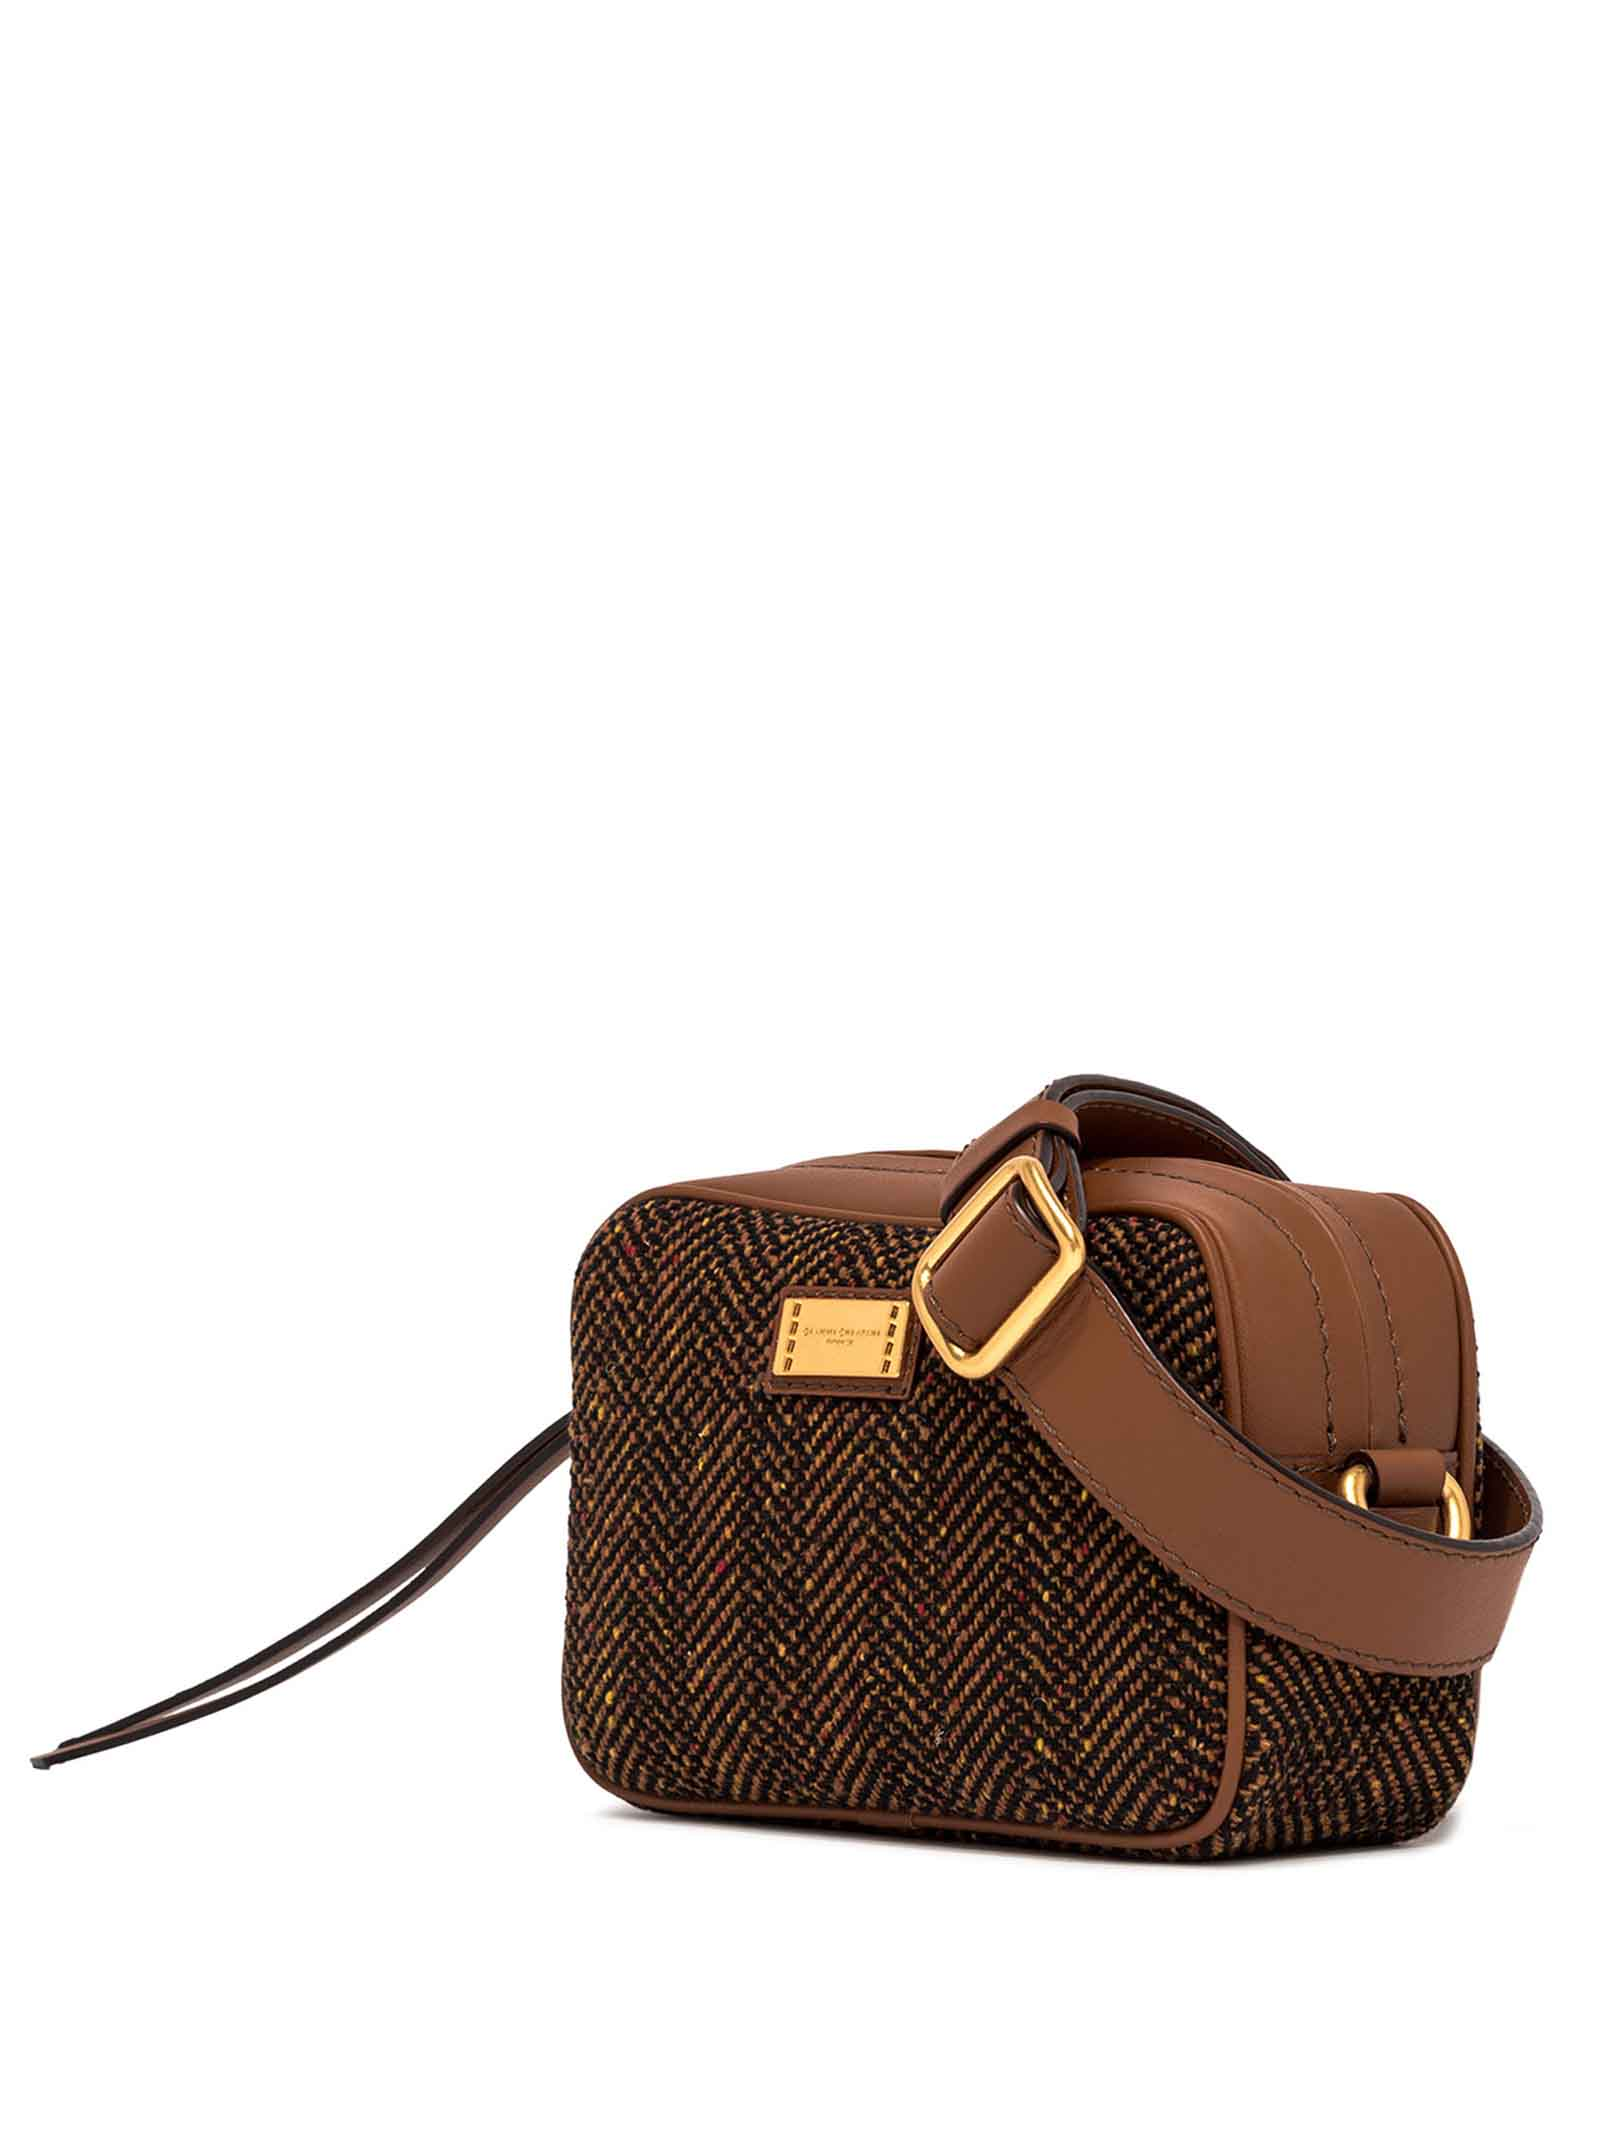 Women's Alyssa Bowling Shoulder Bag in Tan Fabric with Tone Leather Inserts and Adjustable Leather Shoulder Strap and Gold Buckle Gianni Chiarini | Bags and backpacks | BS902110313